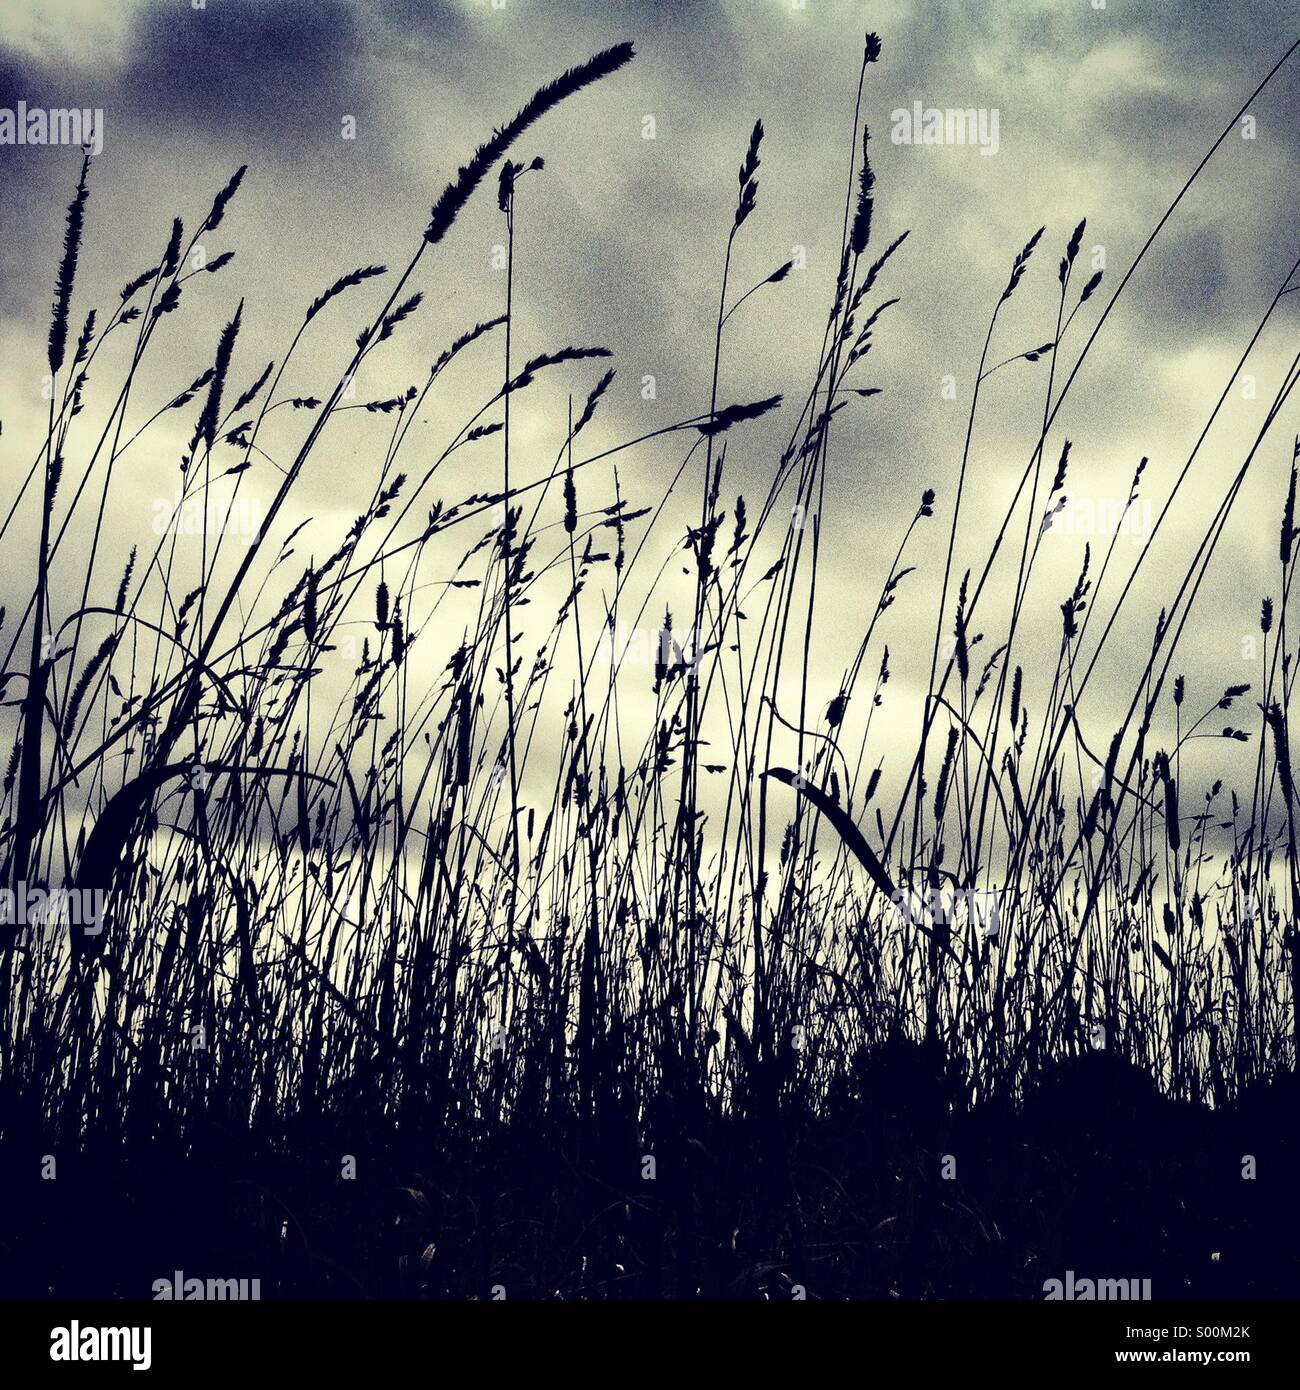 Silhouette of long grass on a gloomy day - Stock Image